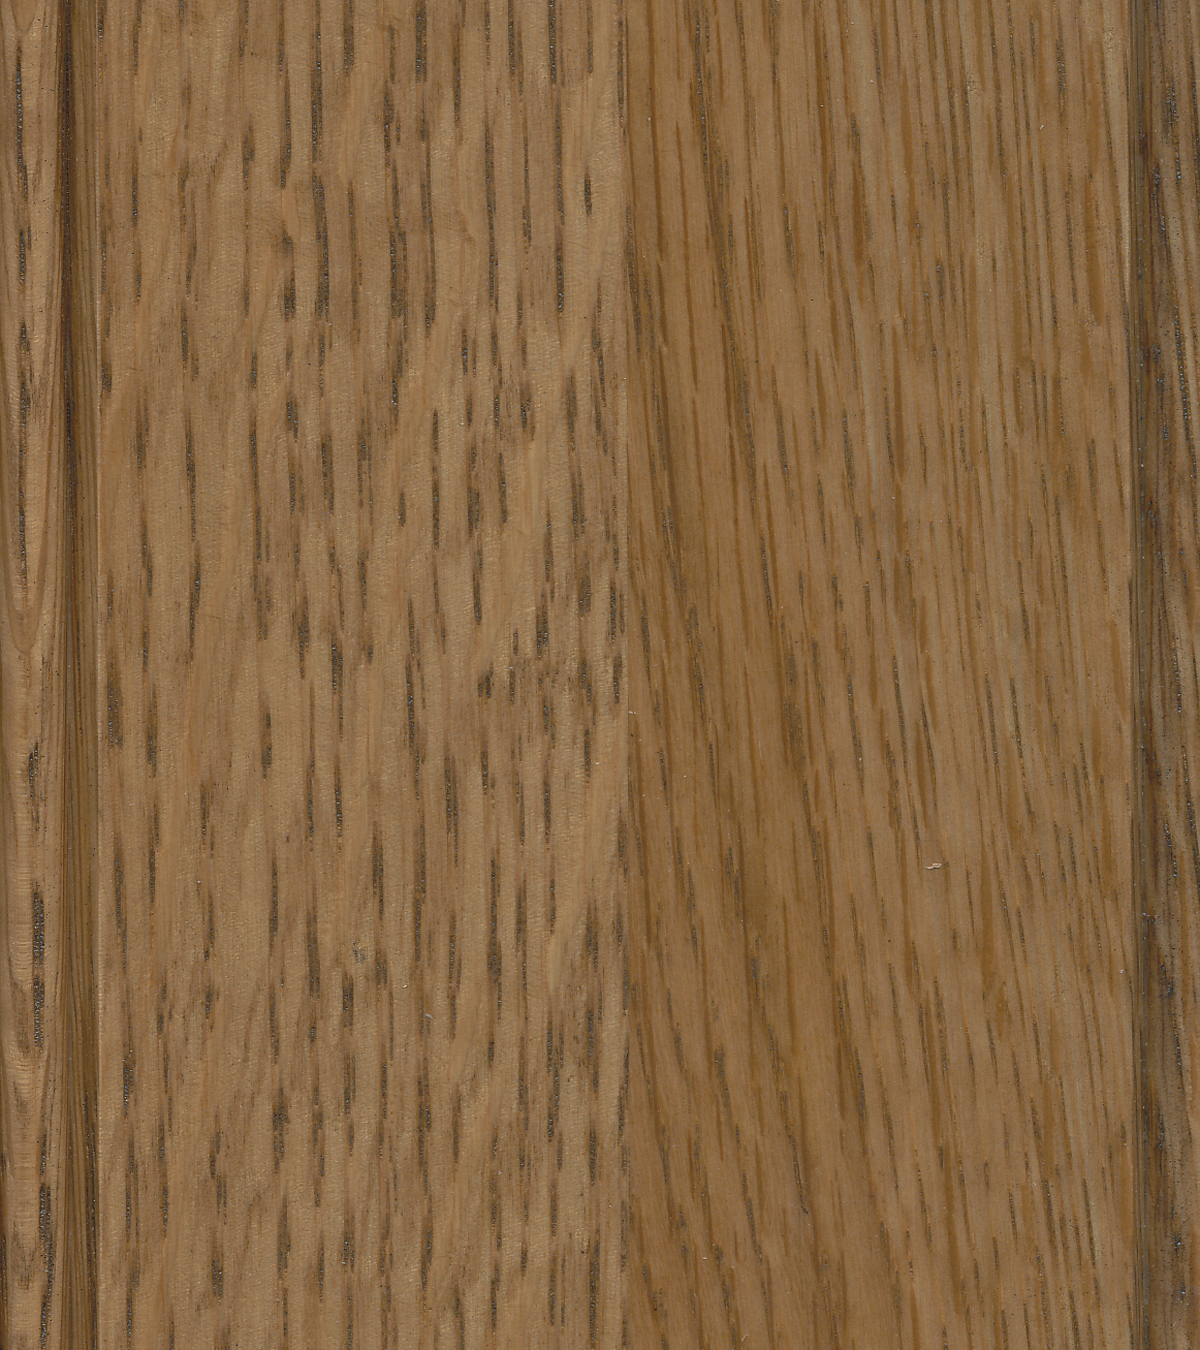 Quarter Sawn White Oak: Tea Qtr Sawn